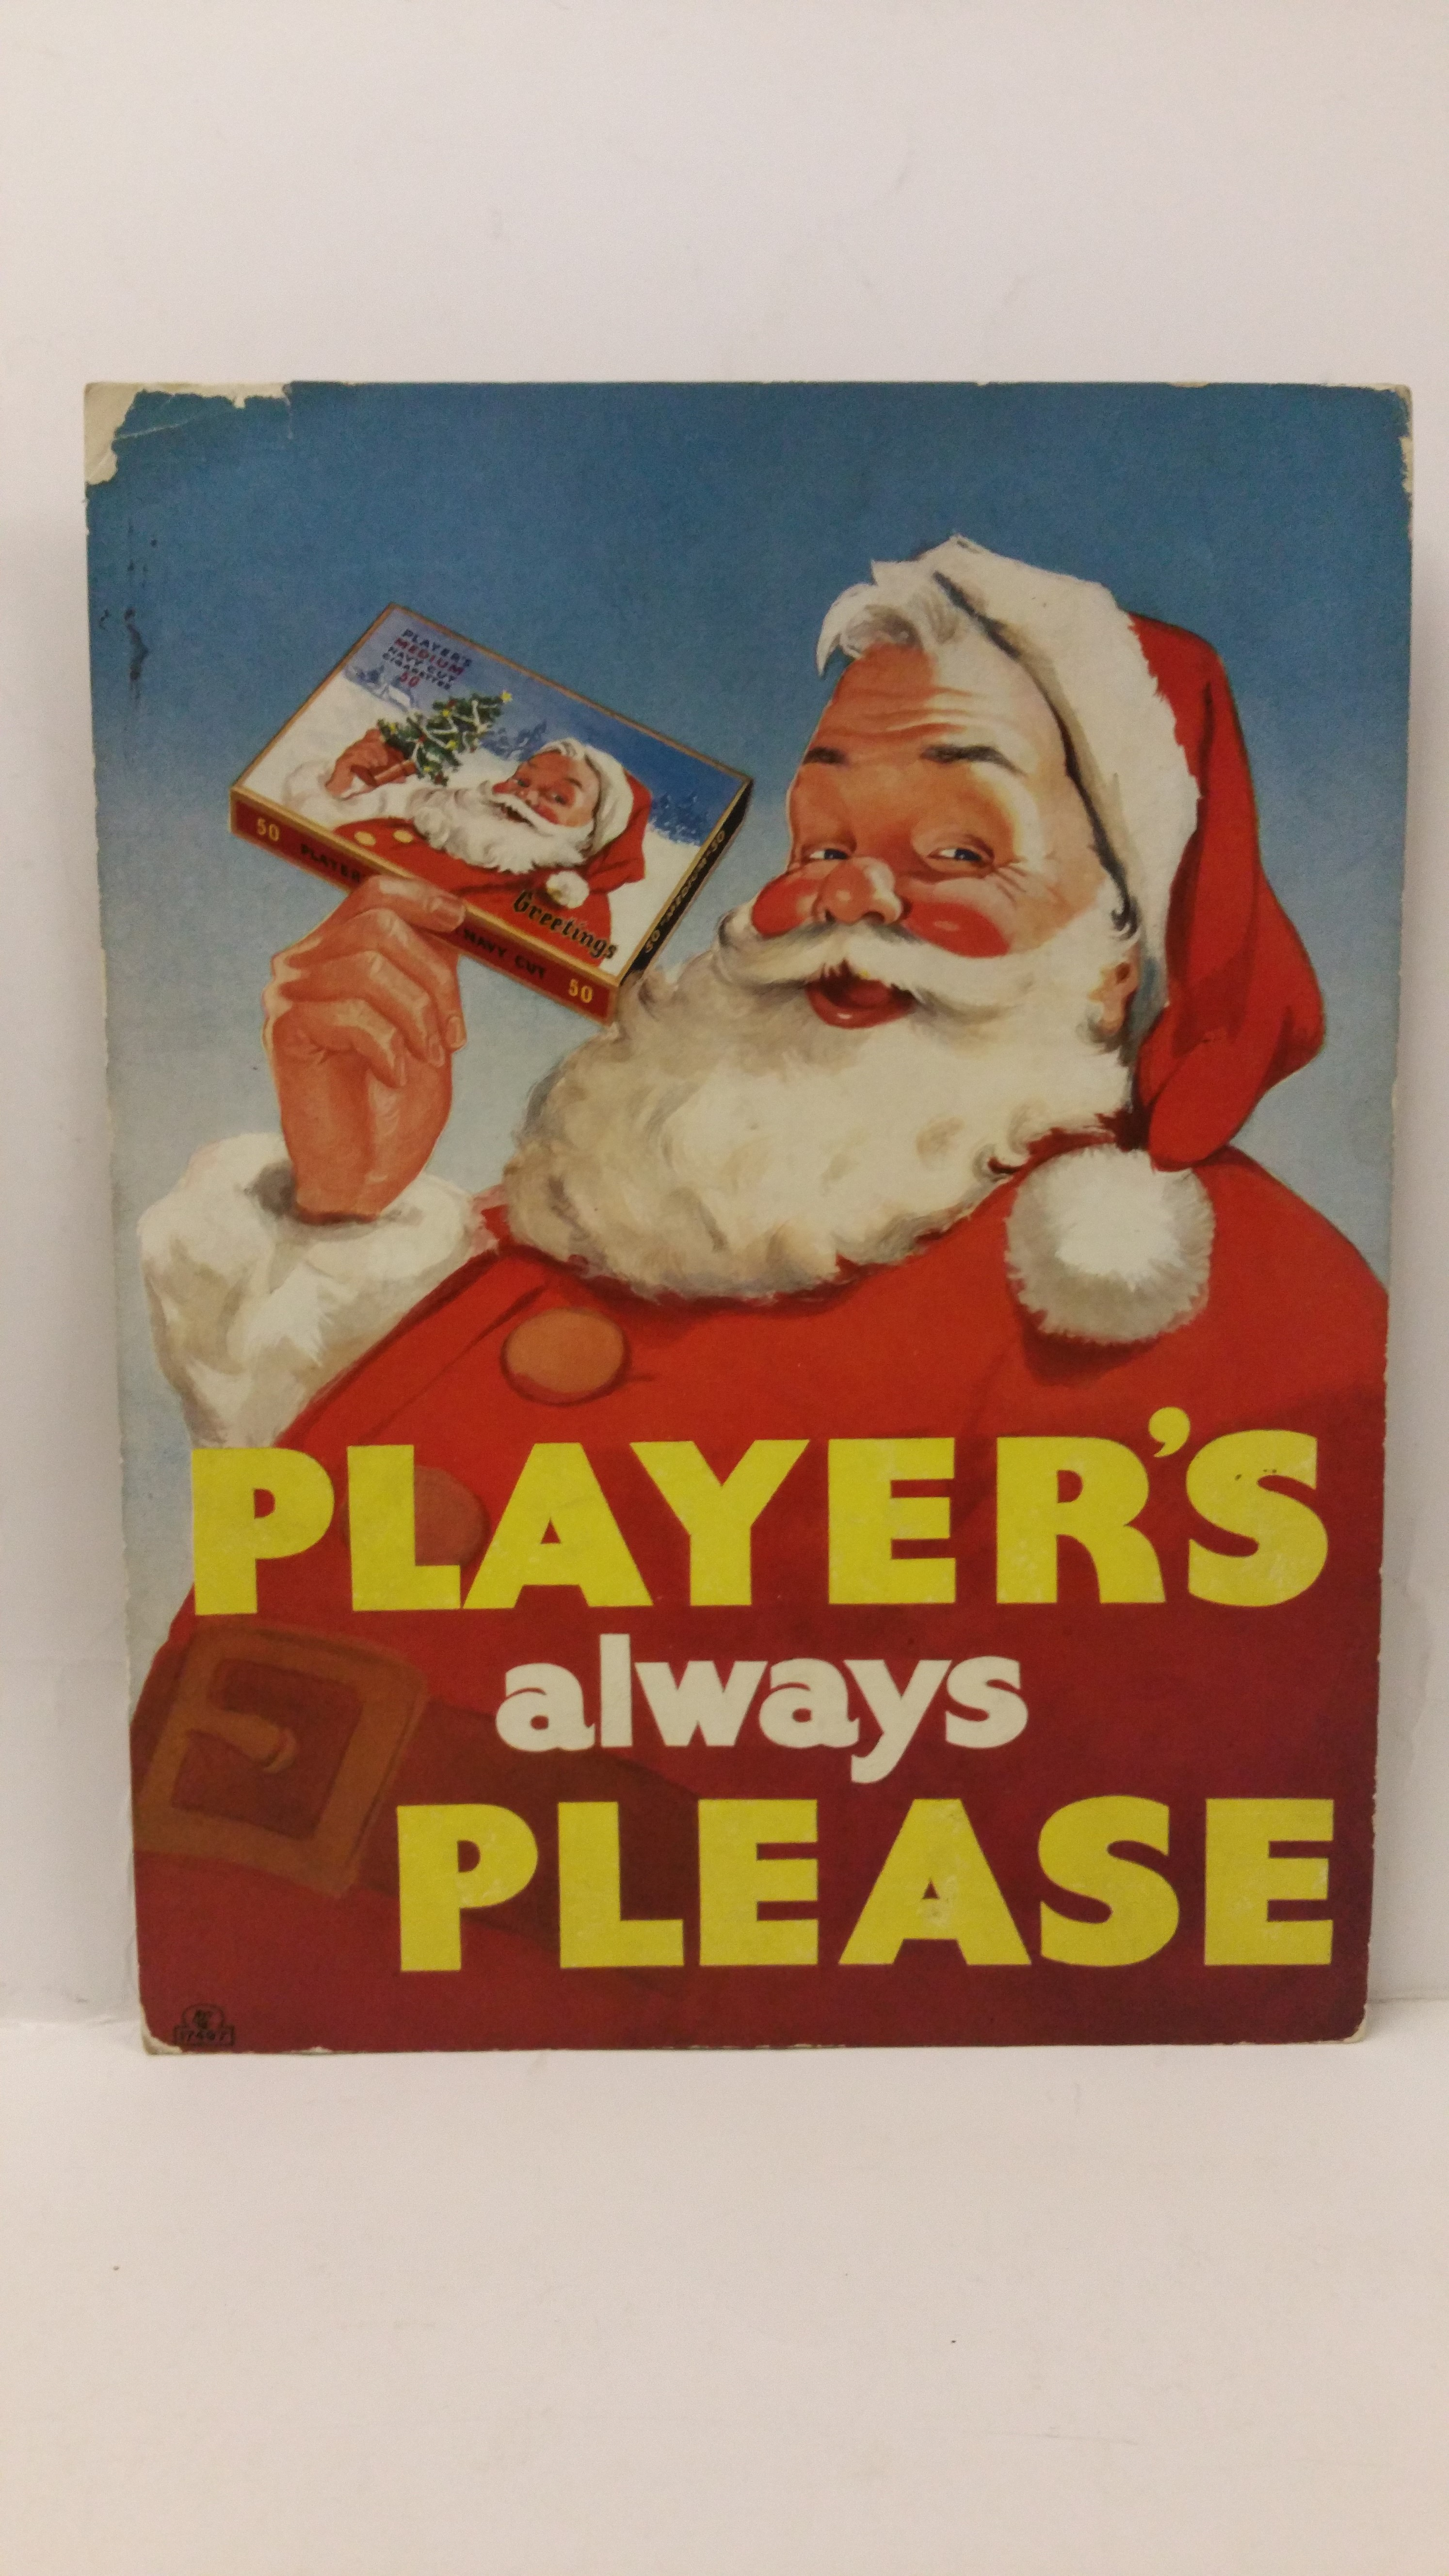 Lot 1133 - PLAYERS, cardboard showcard for Navy Cut Cigarettes, showing Father Christmas holding a box of